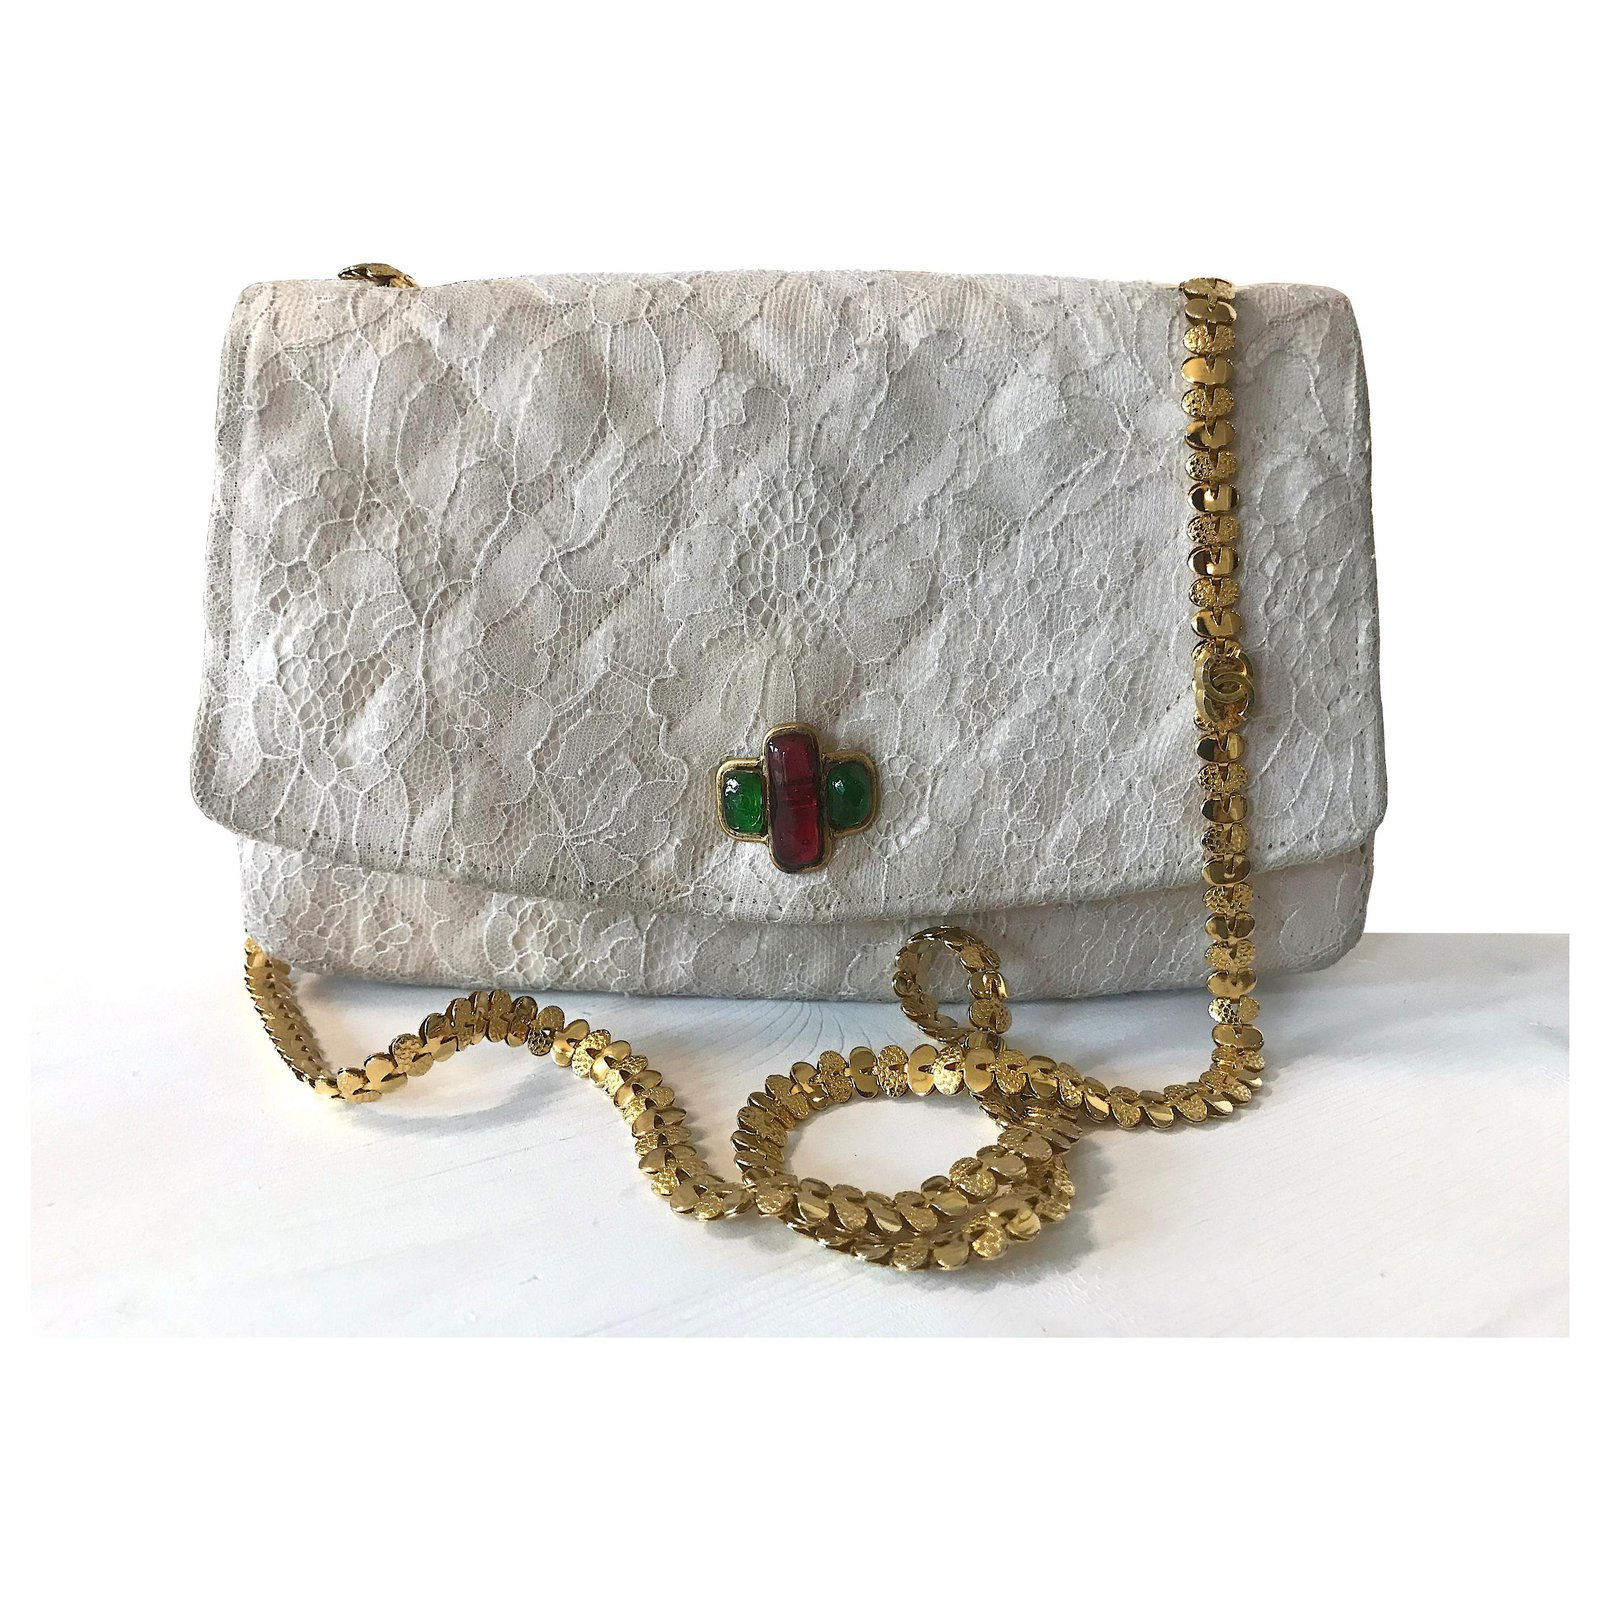 e19d57965d49 Chanel Gripoix crystals flap vintage bag Handbags Silk,Lace Beige,Cream  ref.119623 - Joli Closet